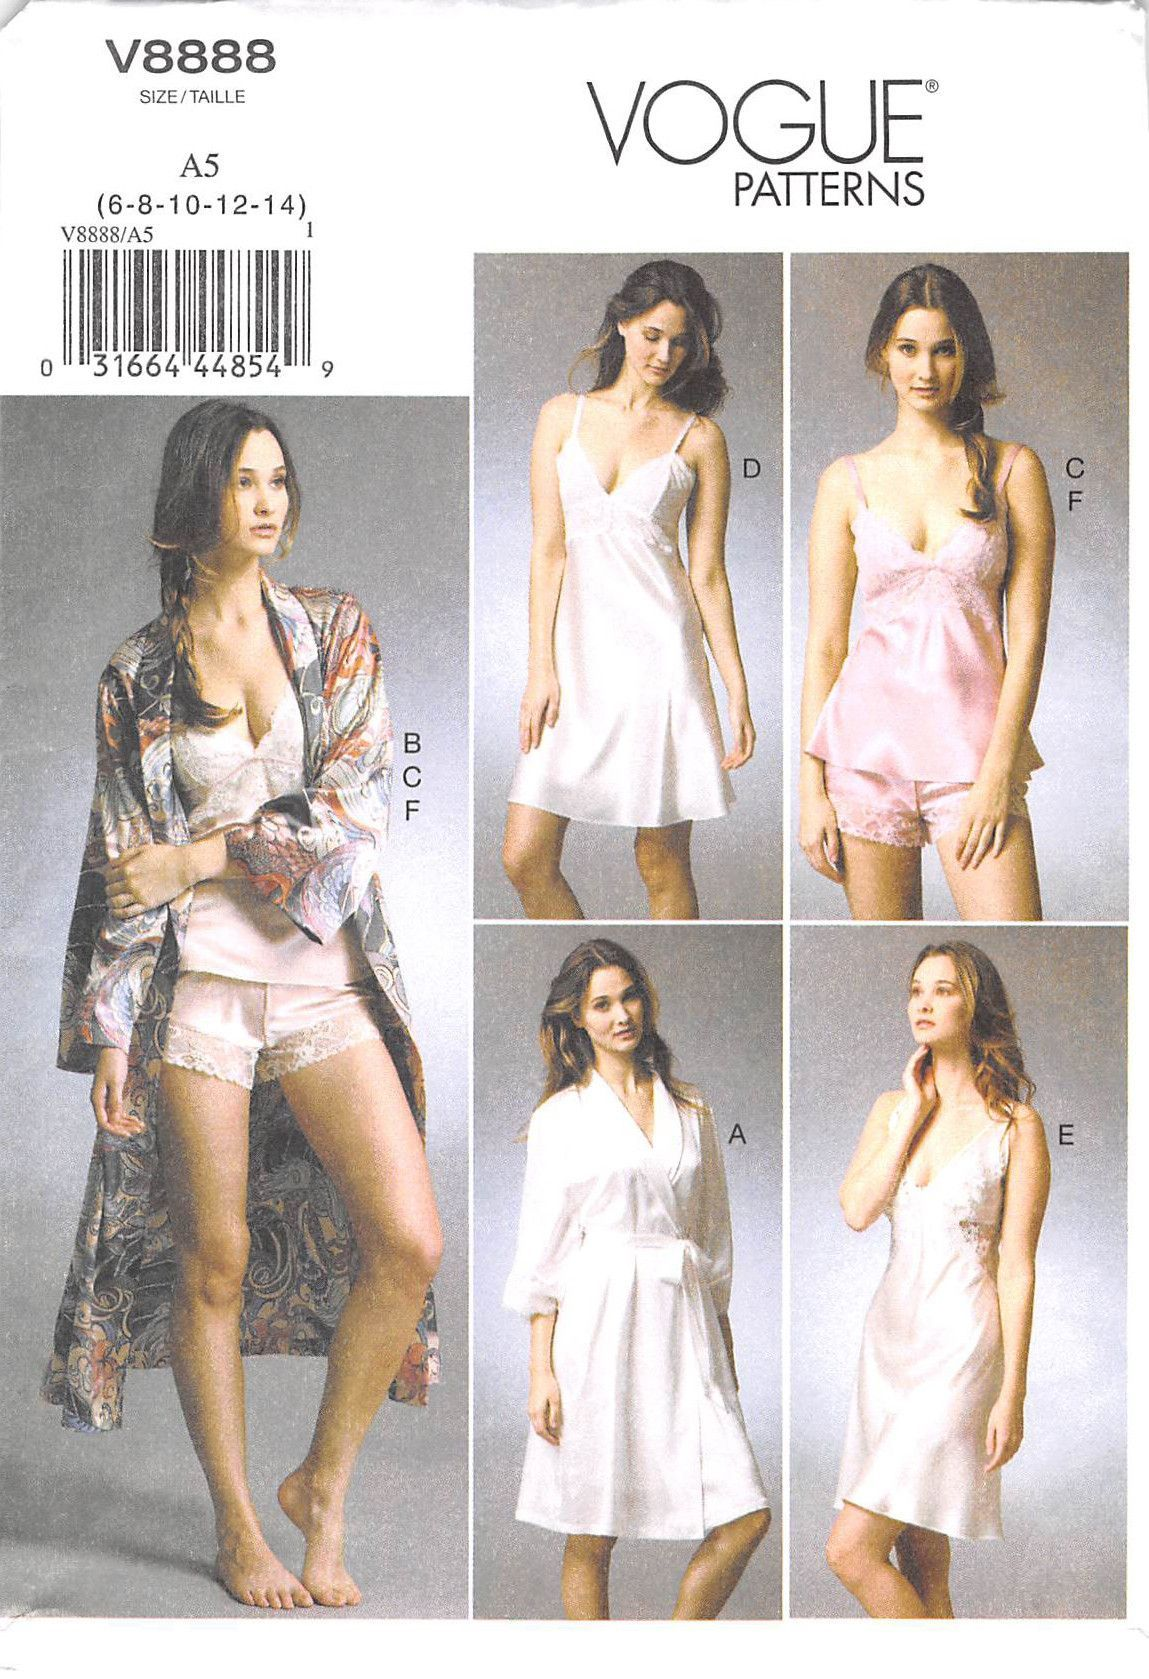 Size A5 VOGUE PATTERNS V8888 Misses Robe//Slip//Camisole and Panties Sewing Template 6-8-10-12-14